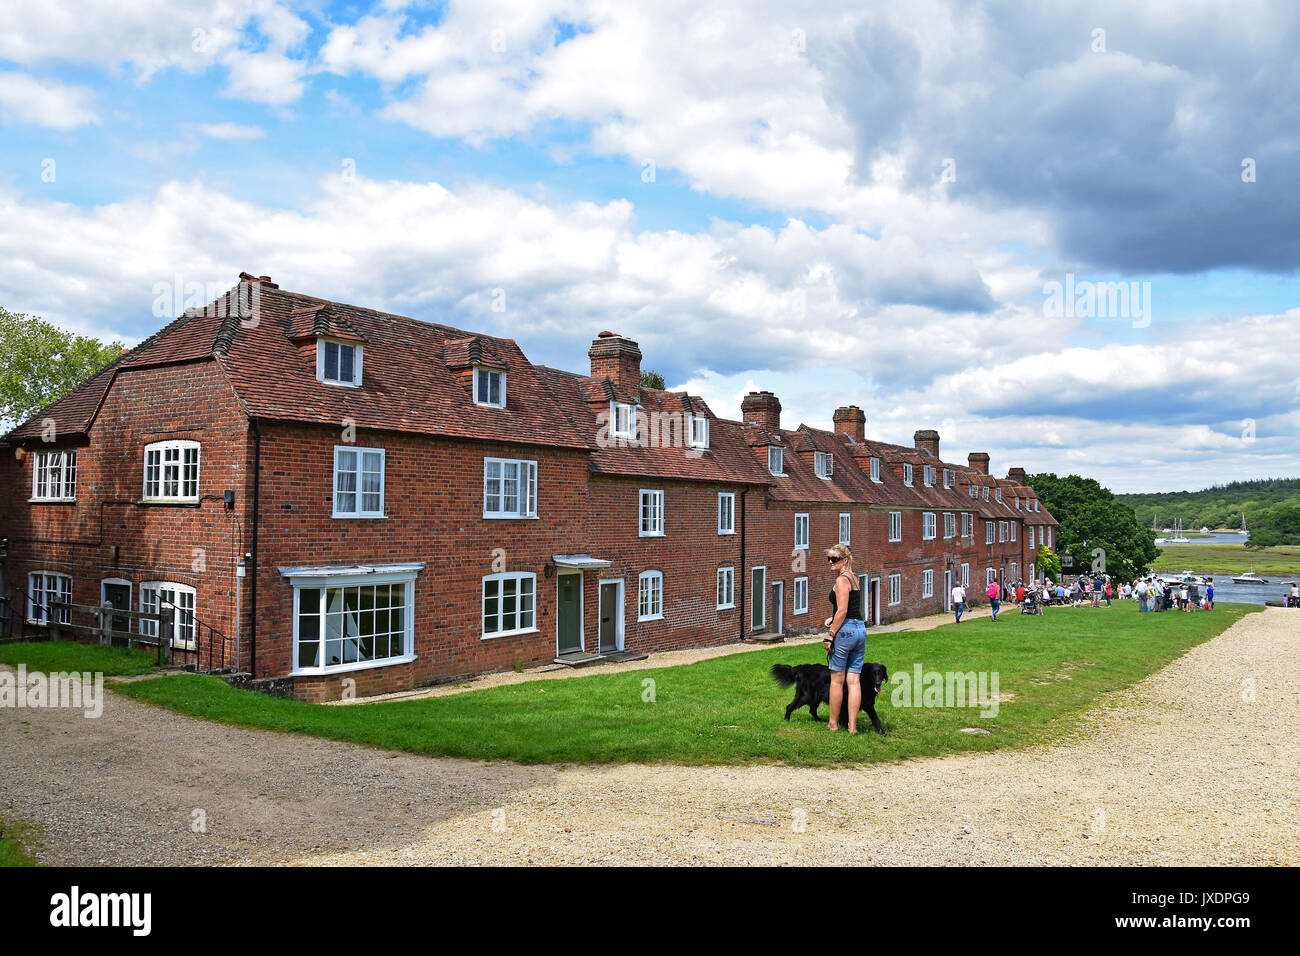 The 18th century shipbuilding village, Bucklers Hard, Beaulieu, New Forest, England. - Stock Image